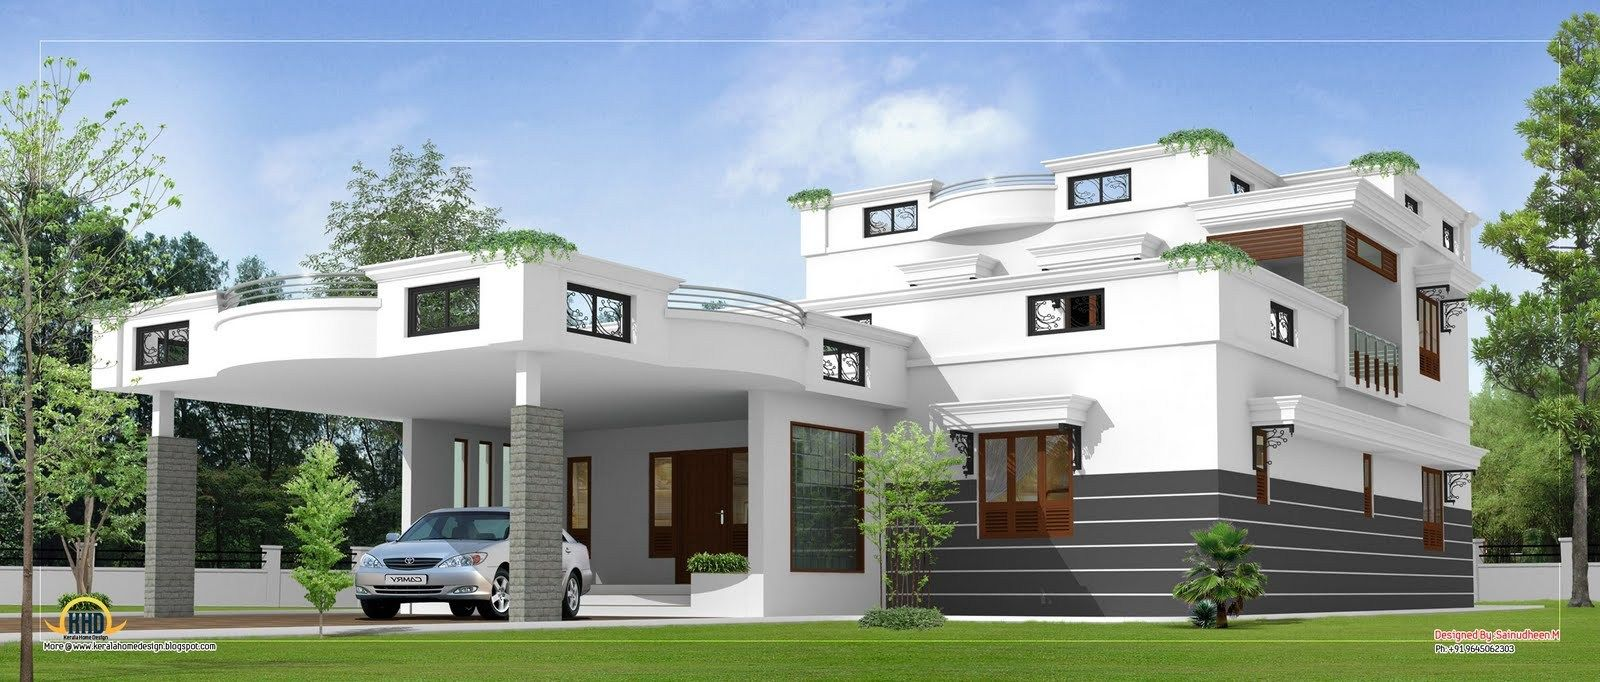 Merveilleux Contemporary Home Designs Home Design Ideas Simply Elegant Home Designs  Unique Small House Plan